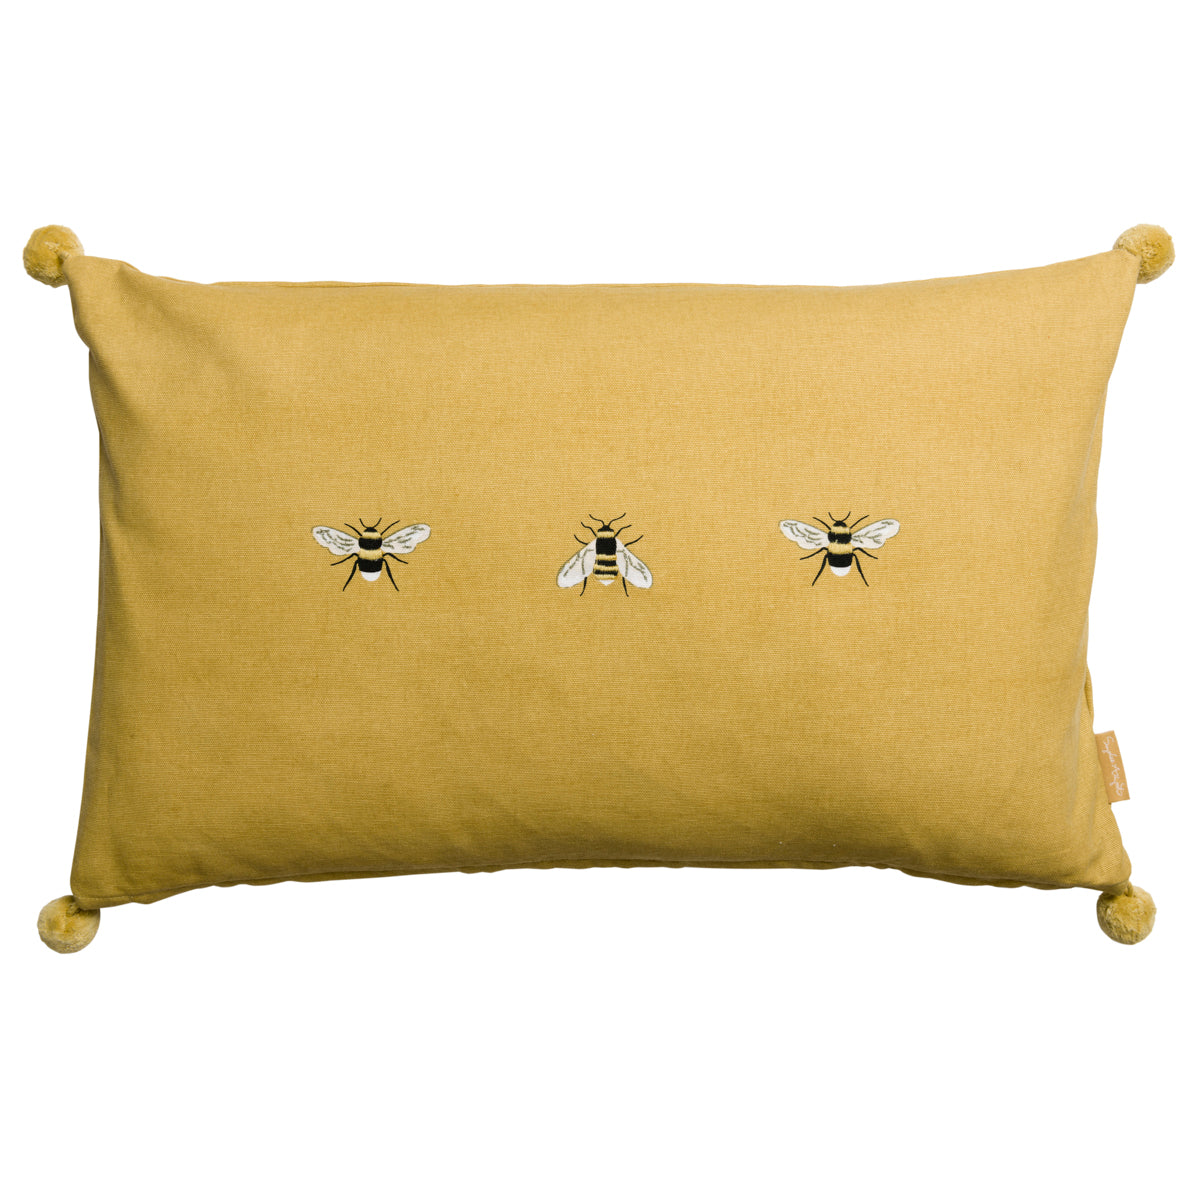 Bees Embroidered Cushion